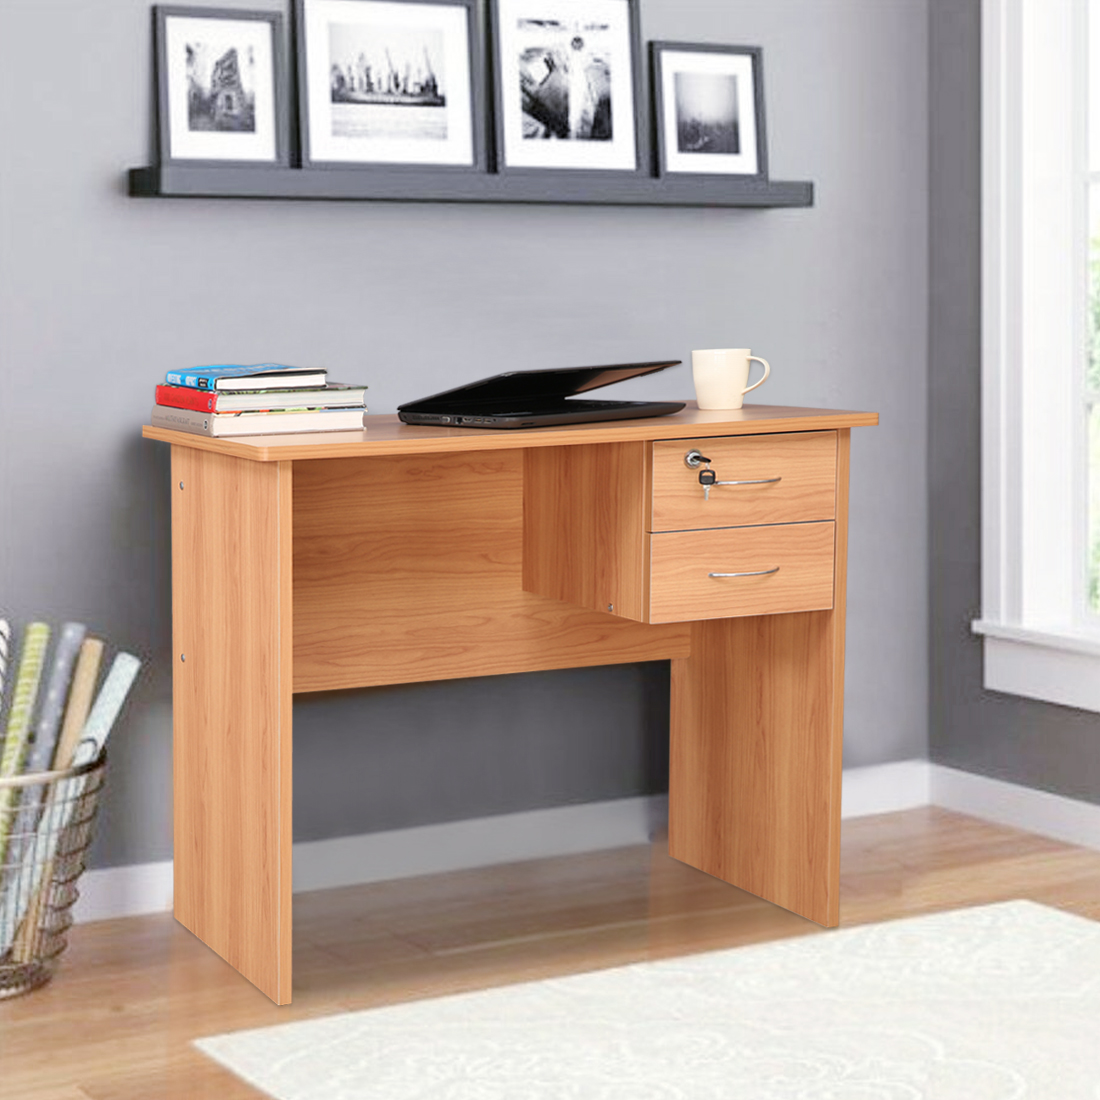 Simply Engineered Wood Study Table in Honey Colour by HomeTown